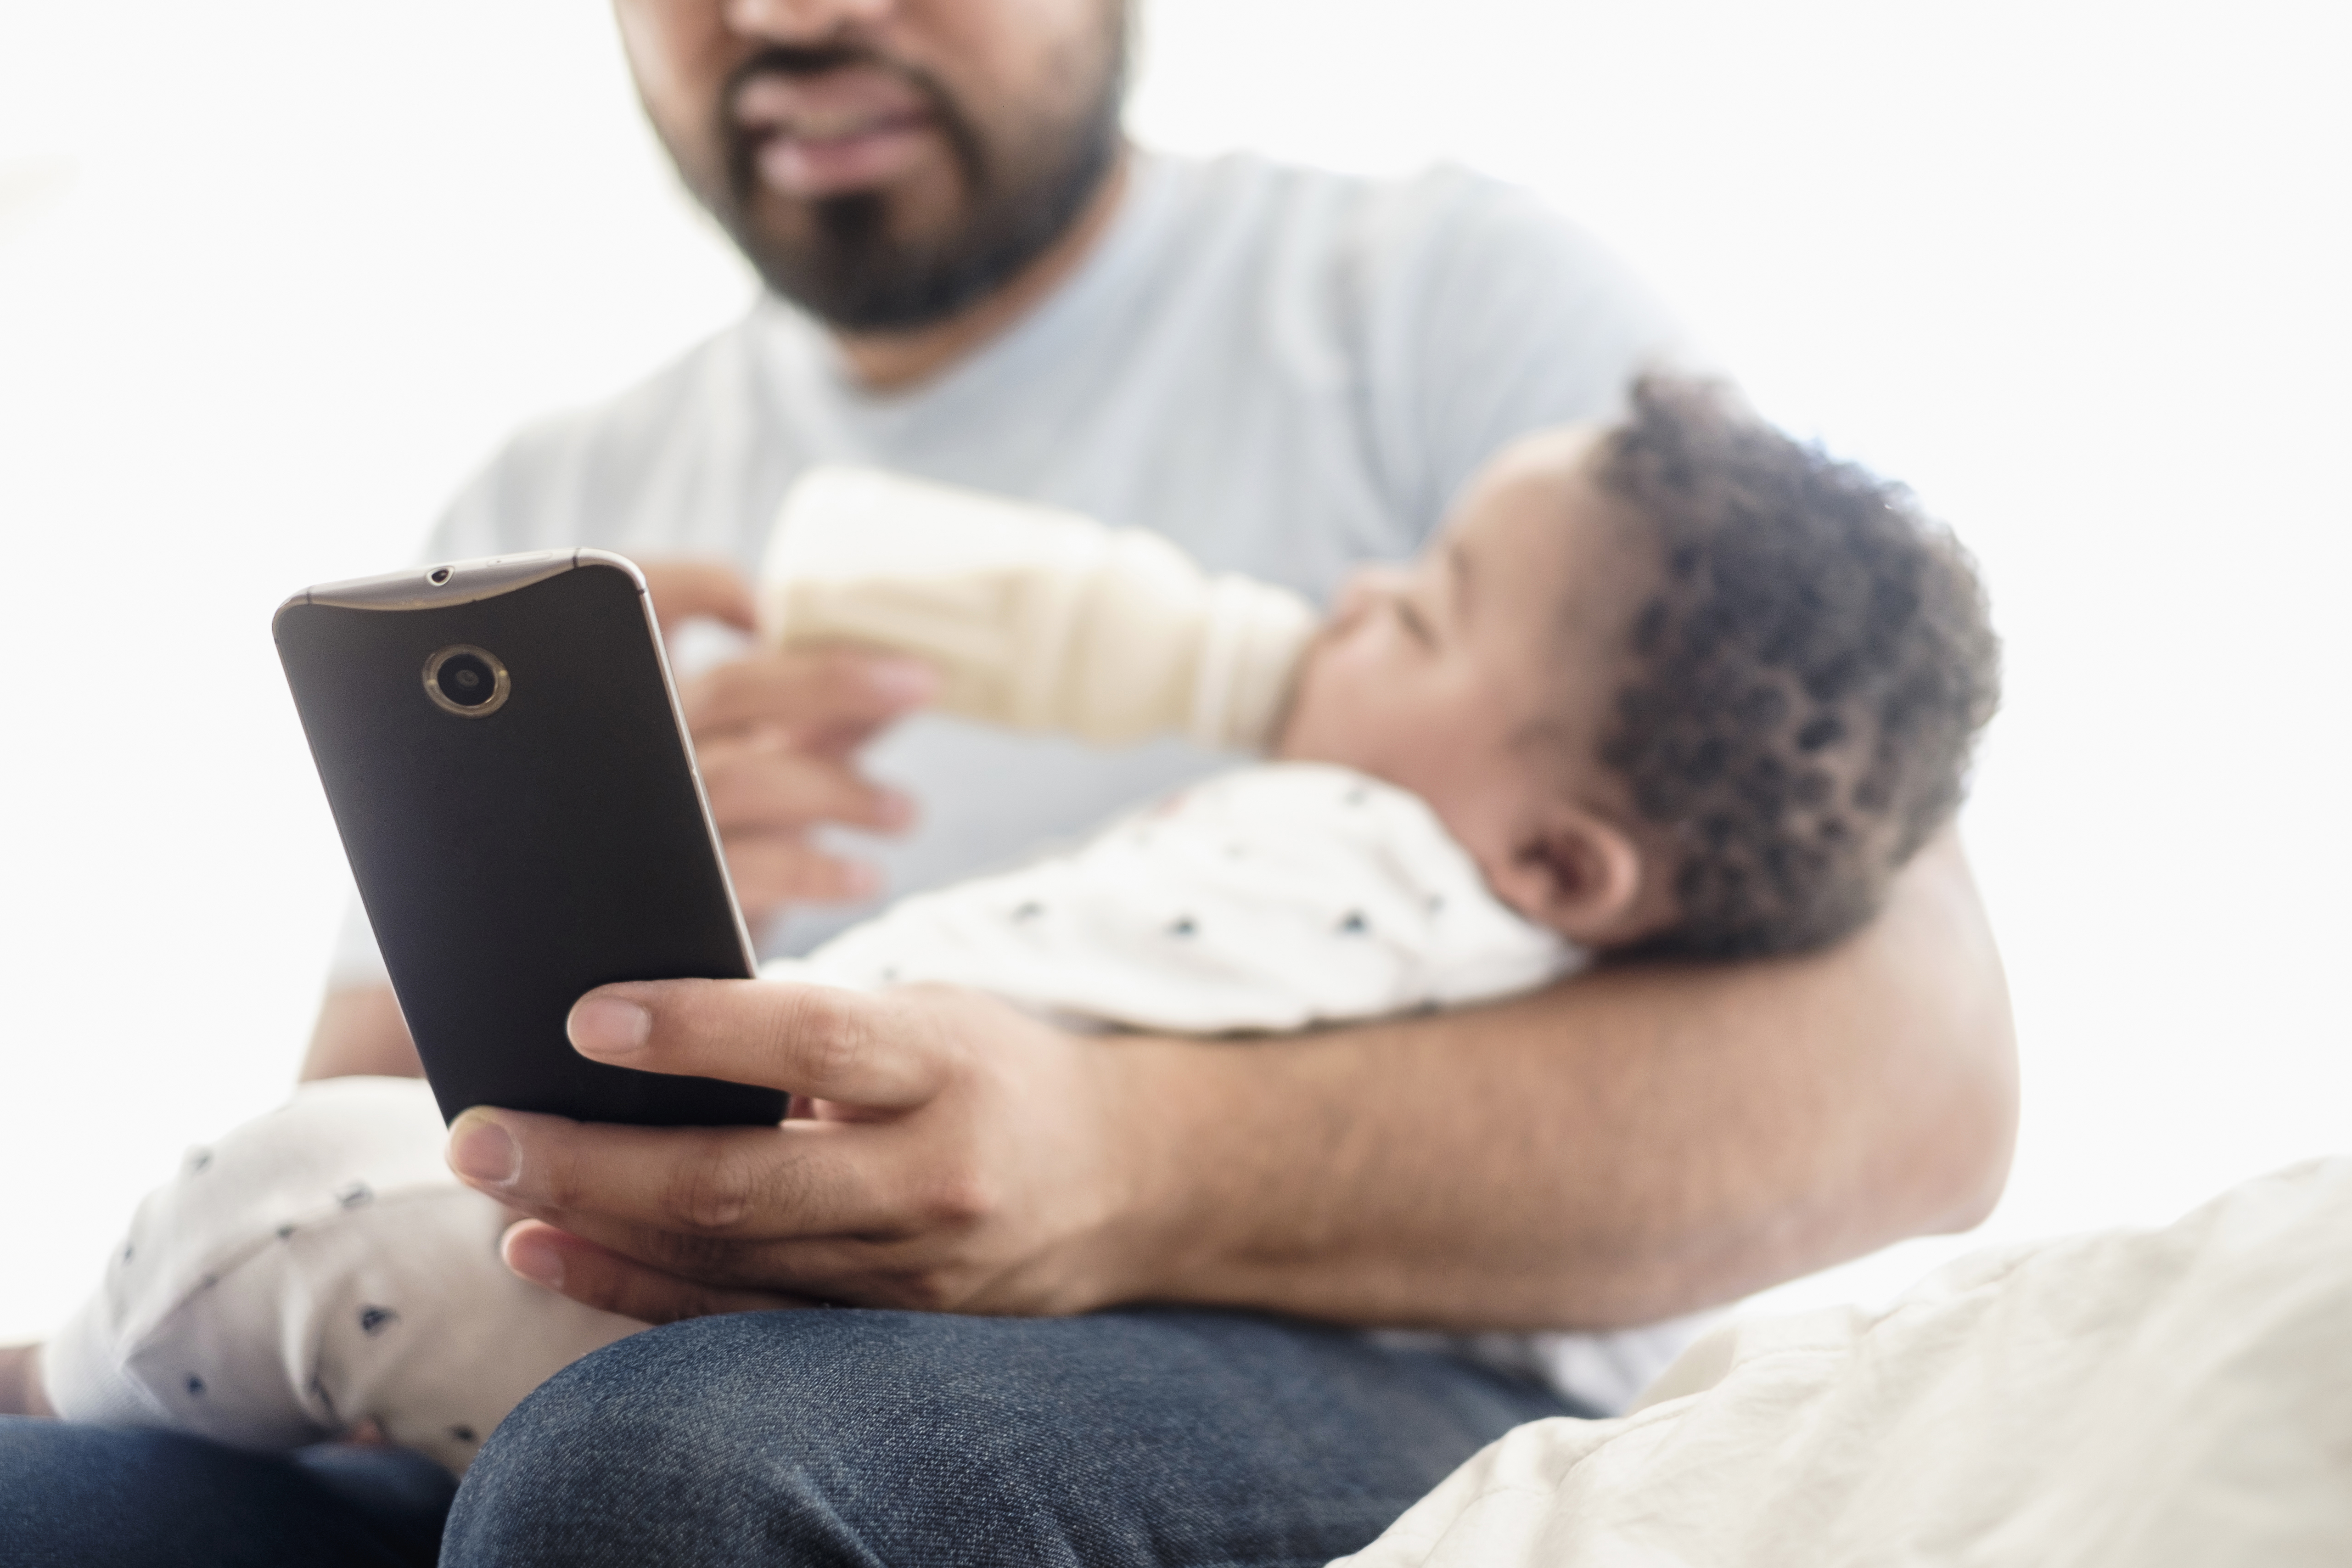 Father bottle feeding baby son and using cell phone